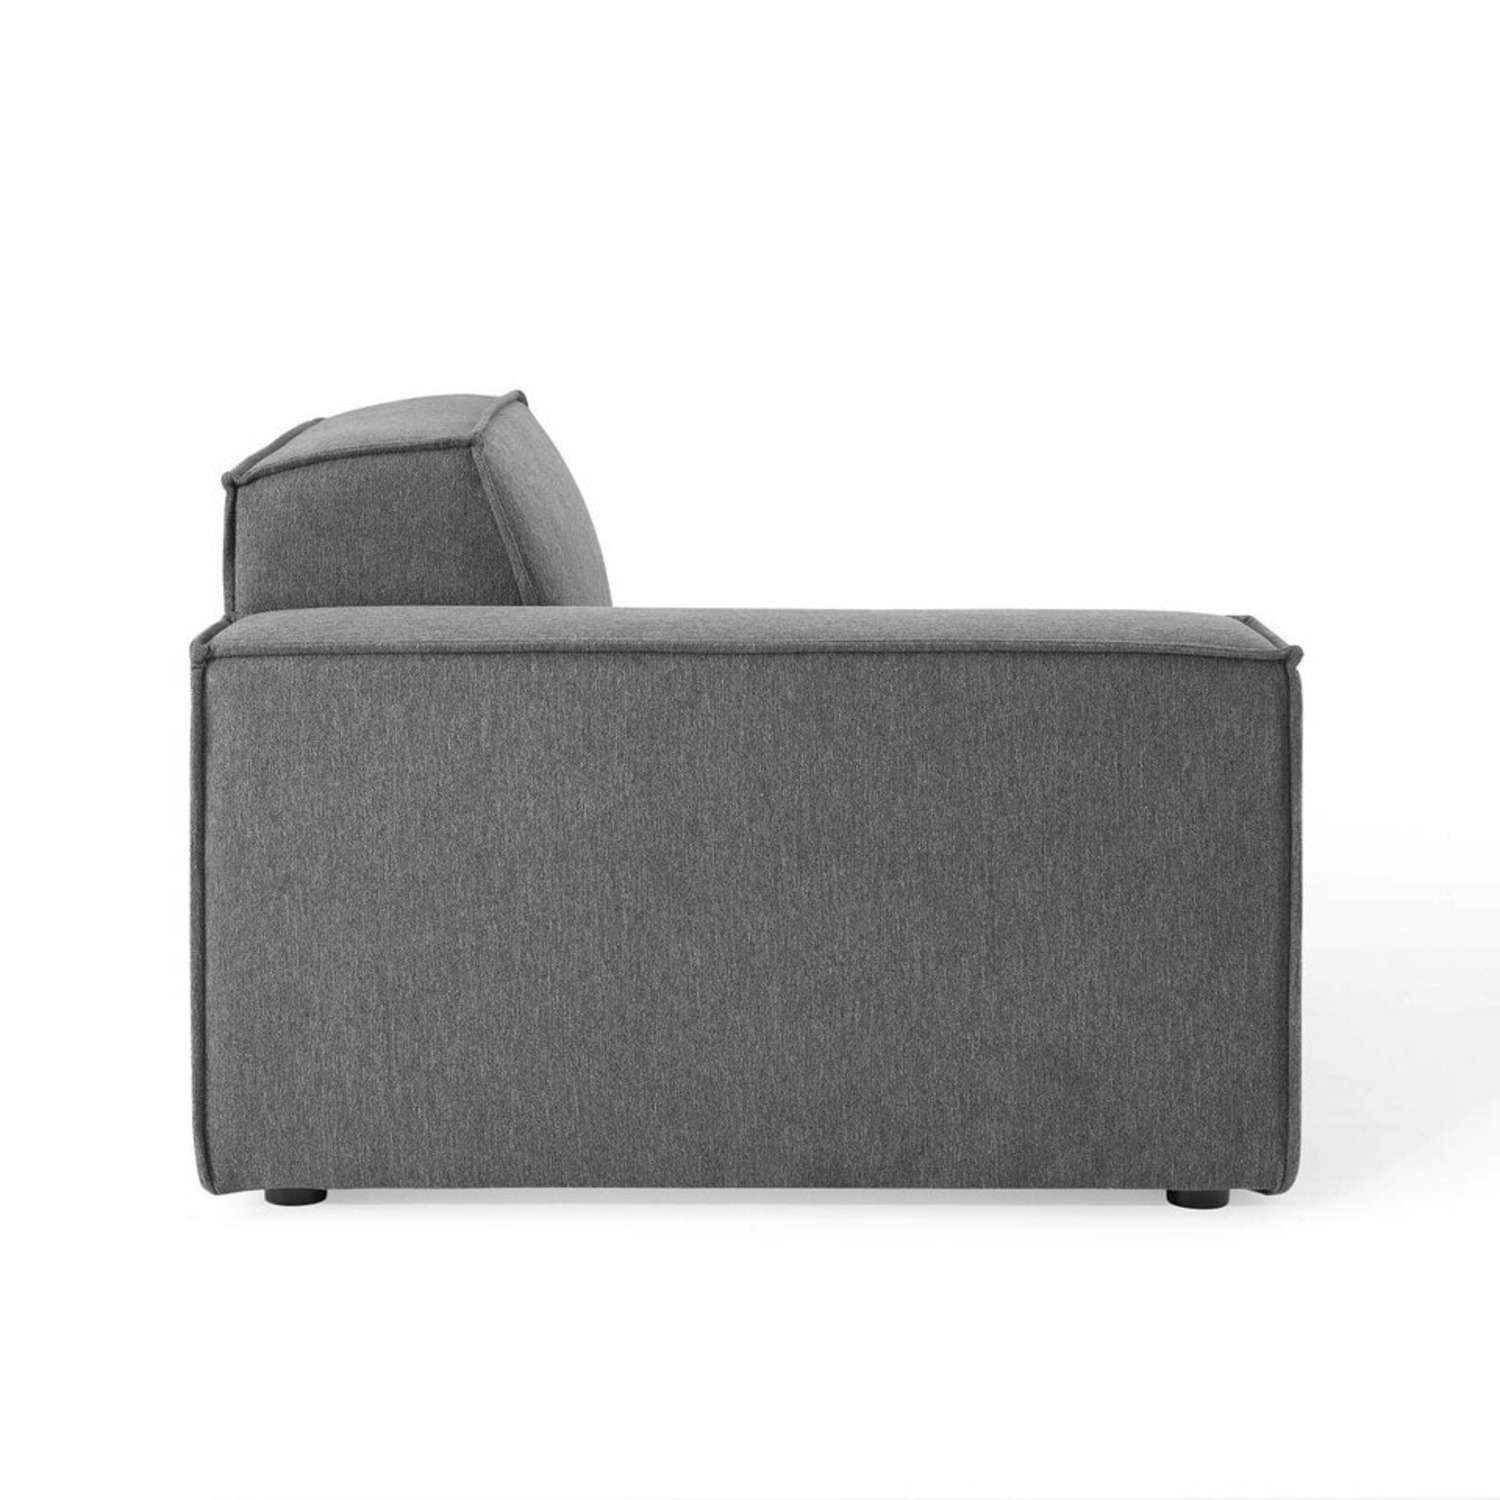 7-Piece Sectional Sofa In Charcoal Upholstery - image-5